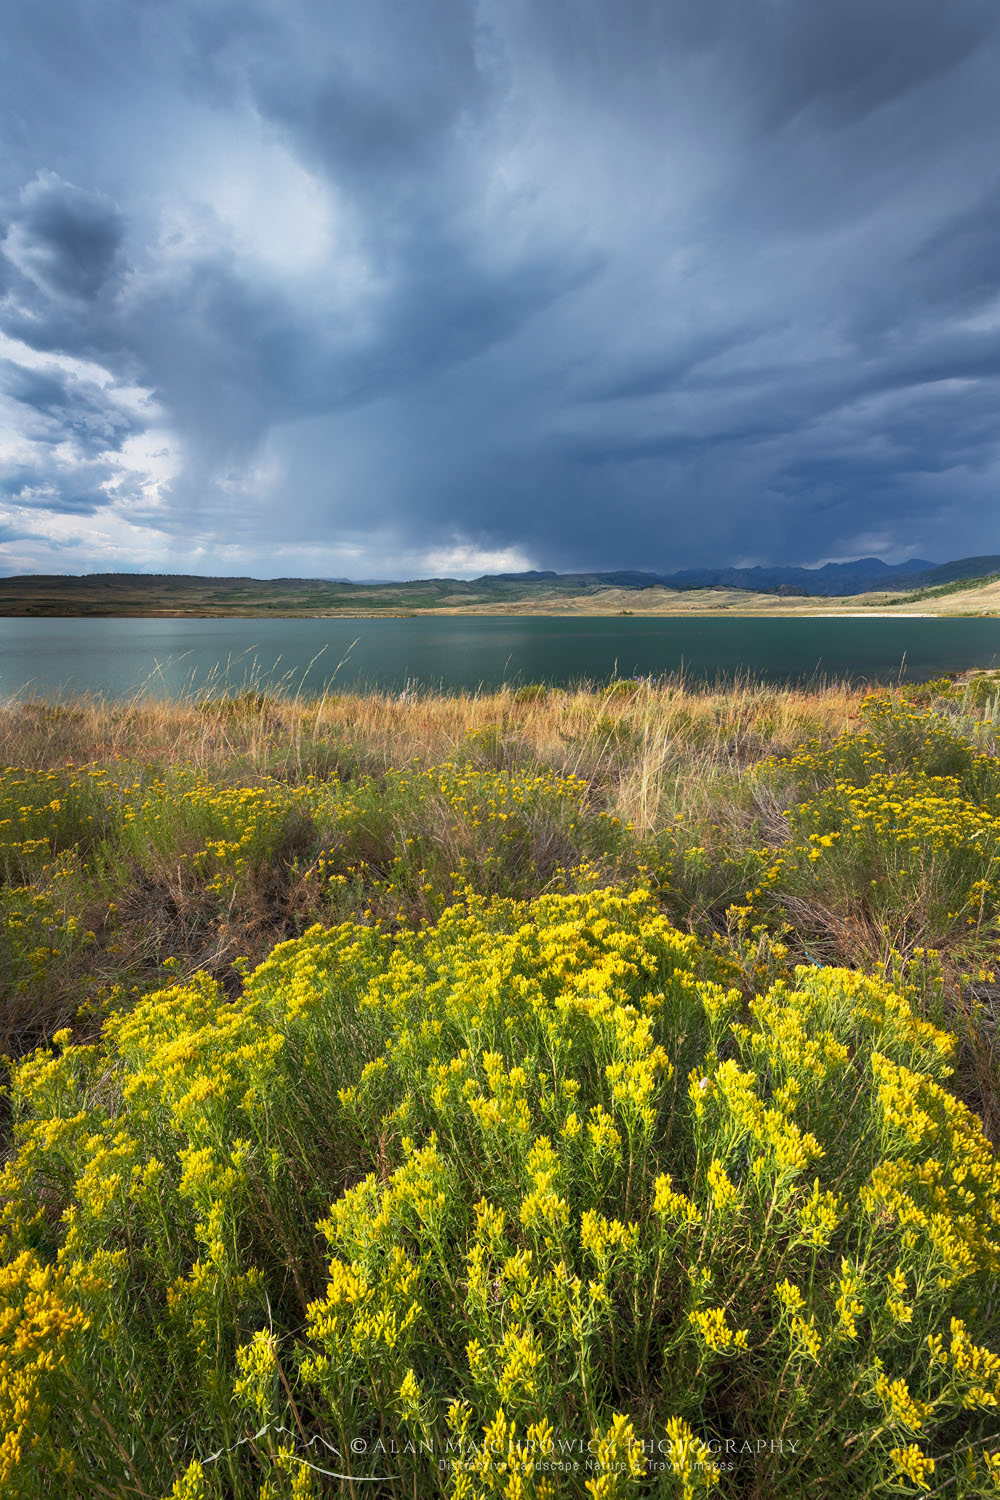 Rabbitbrush and Storm clouds over Soda Lake Wyoming